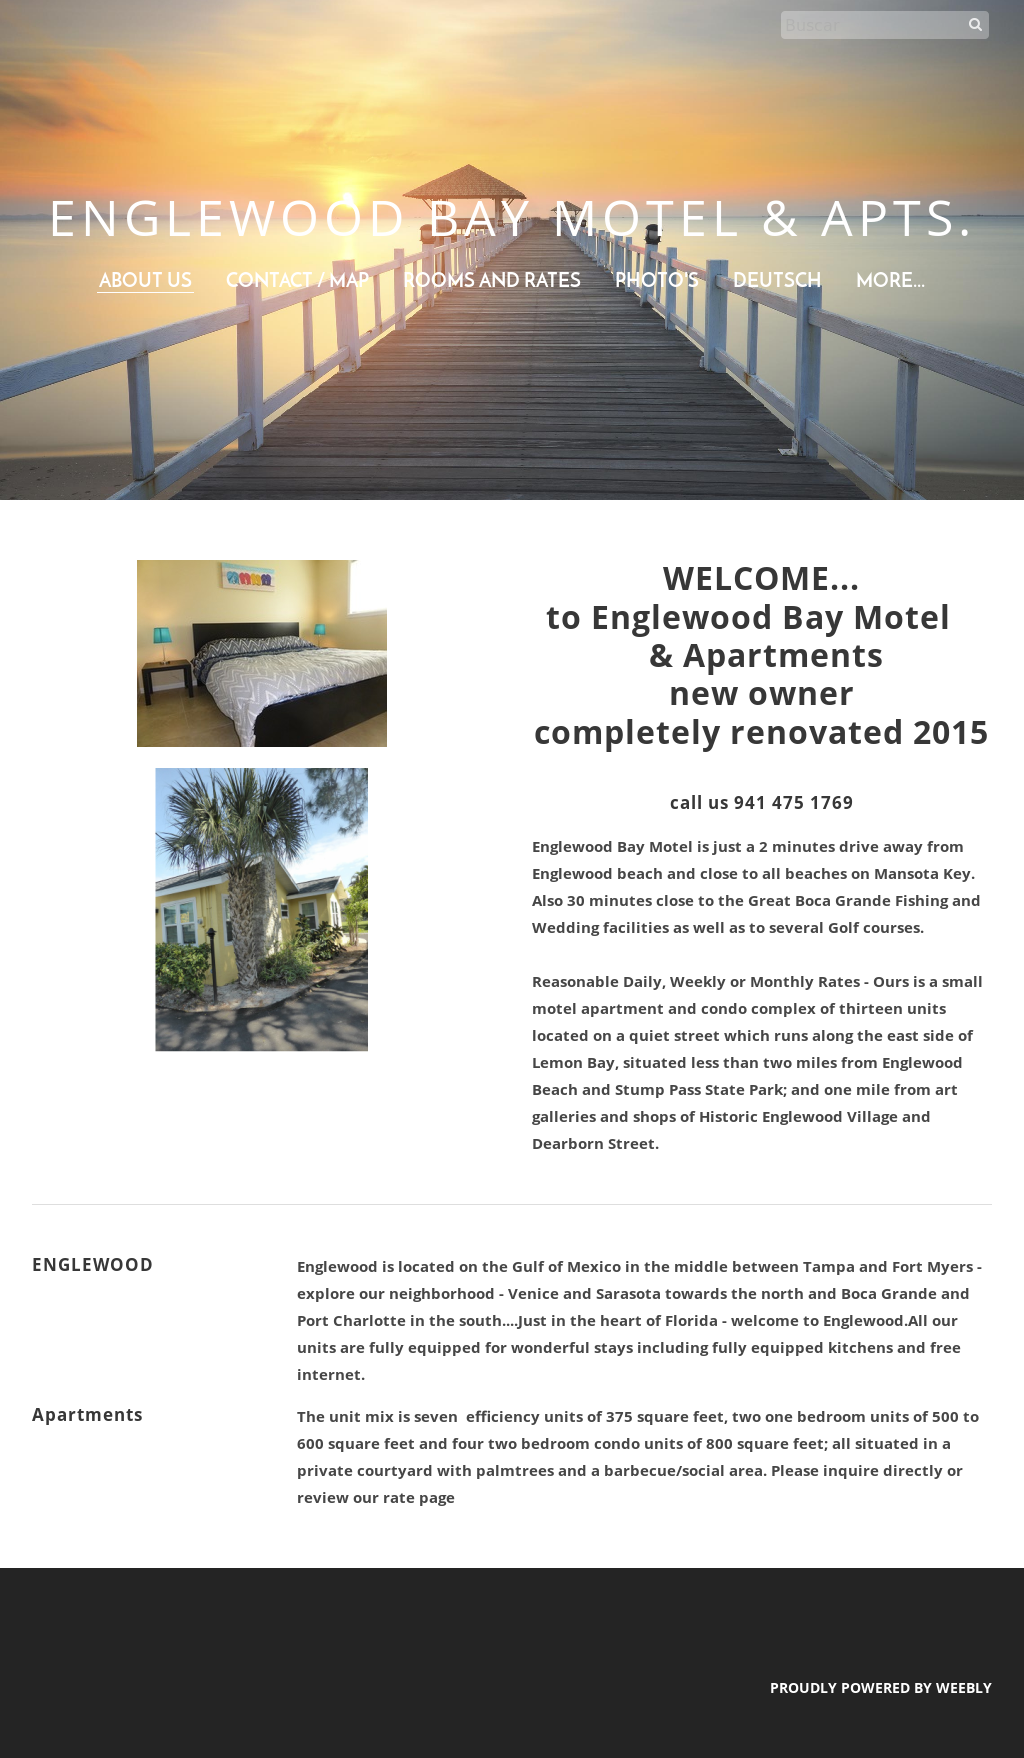 Englewood Bay Motel & Apartments Competitors, Revenue and